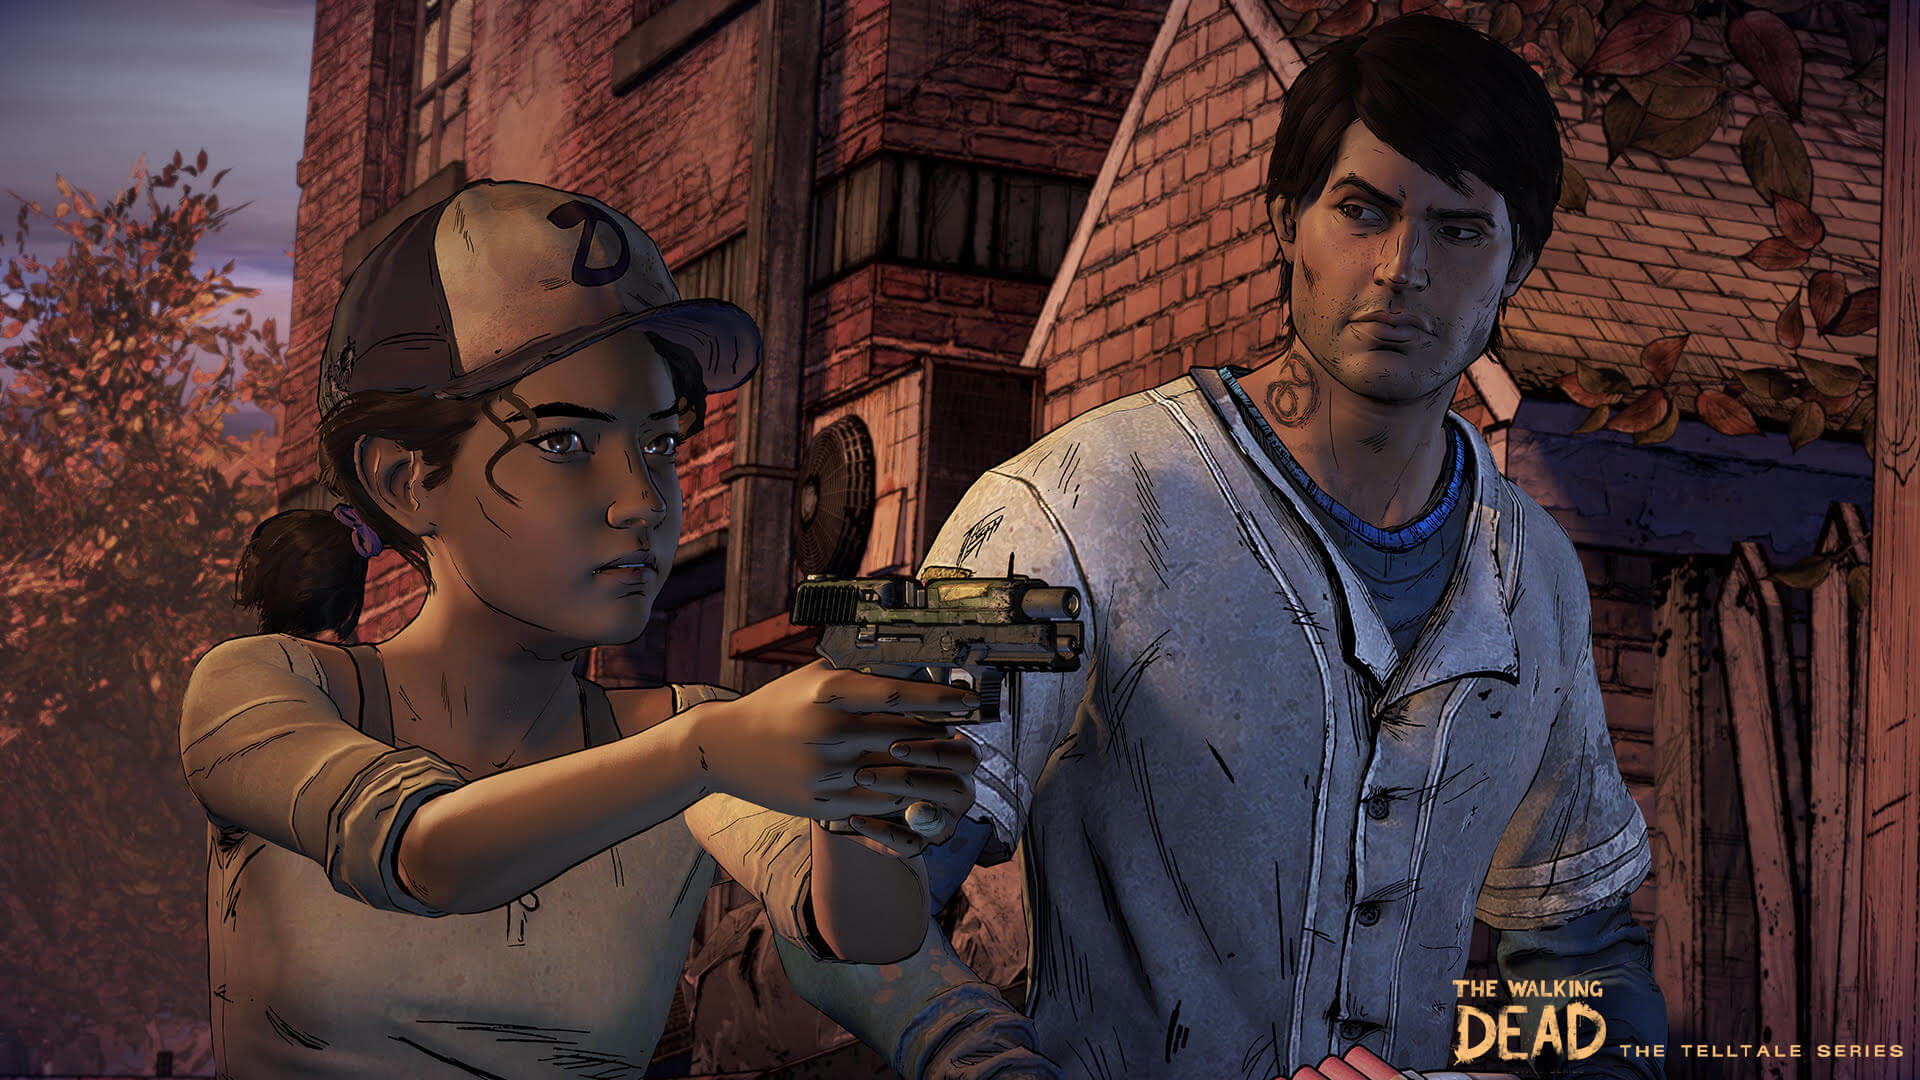 Clementine kehrt zurück in The Walking Dead – Season 3 (Bildrechte: Telltale Games)